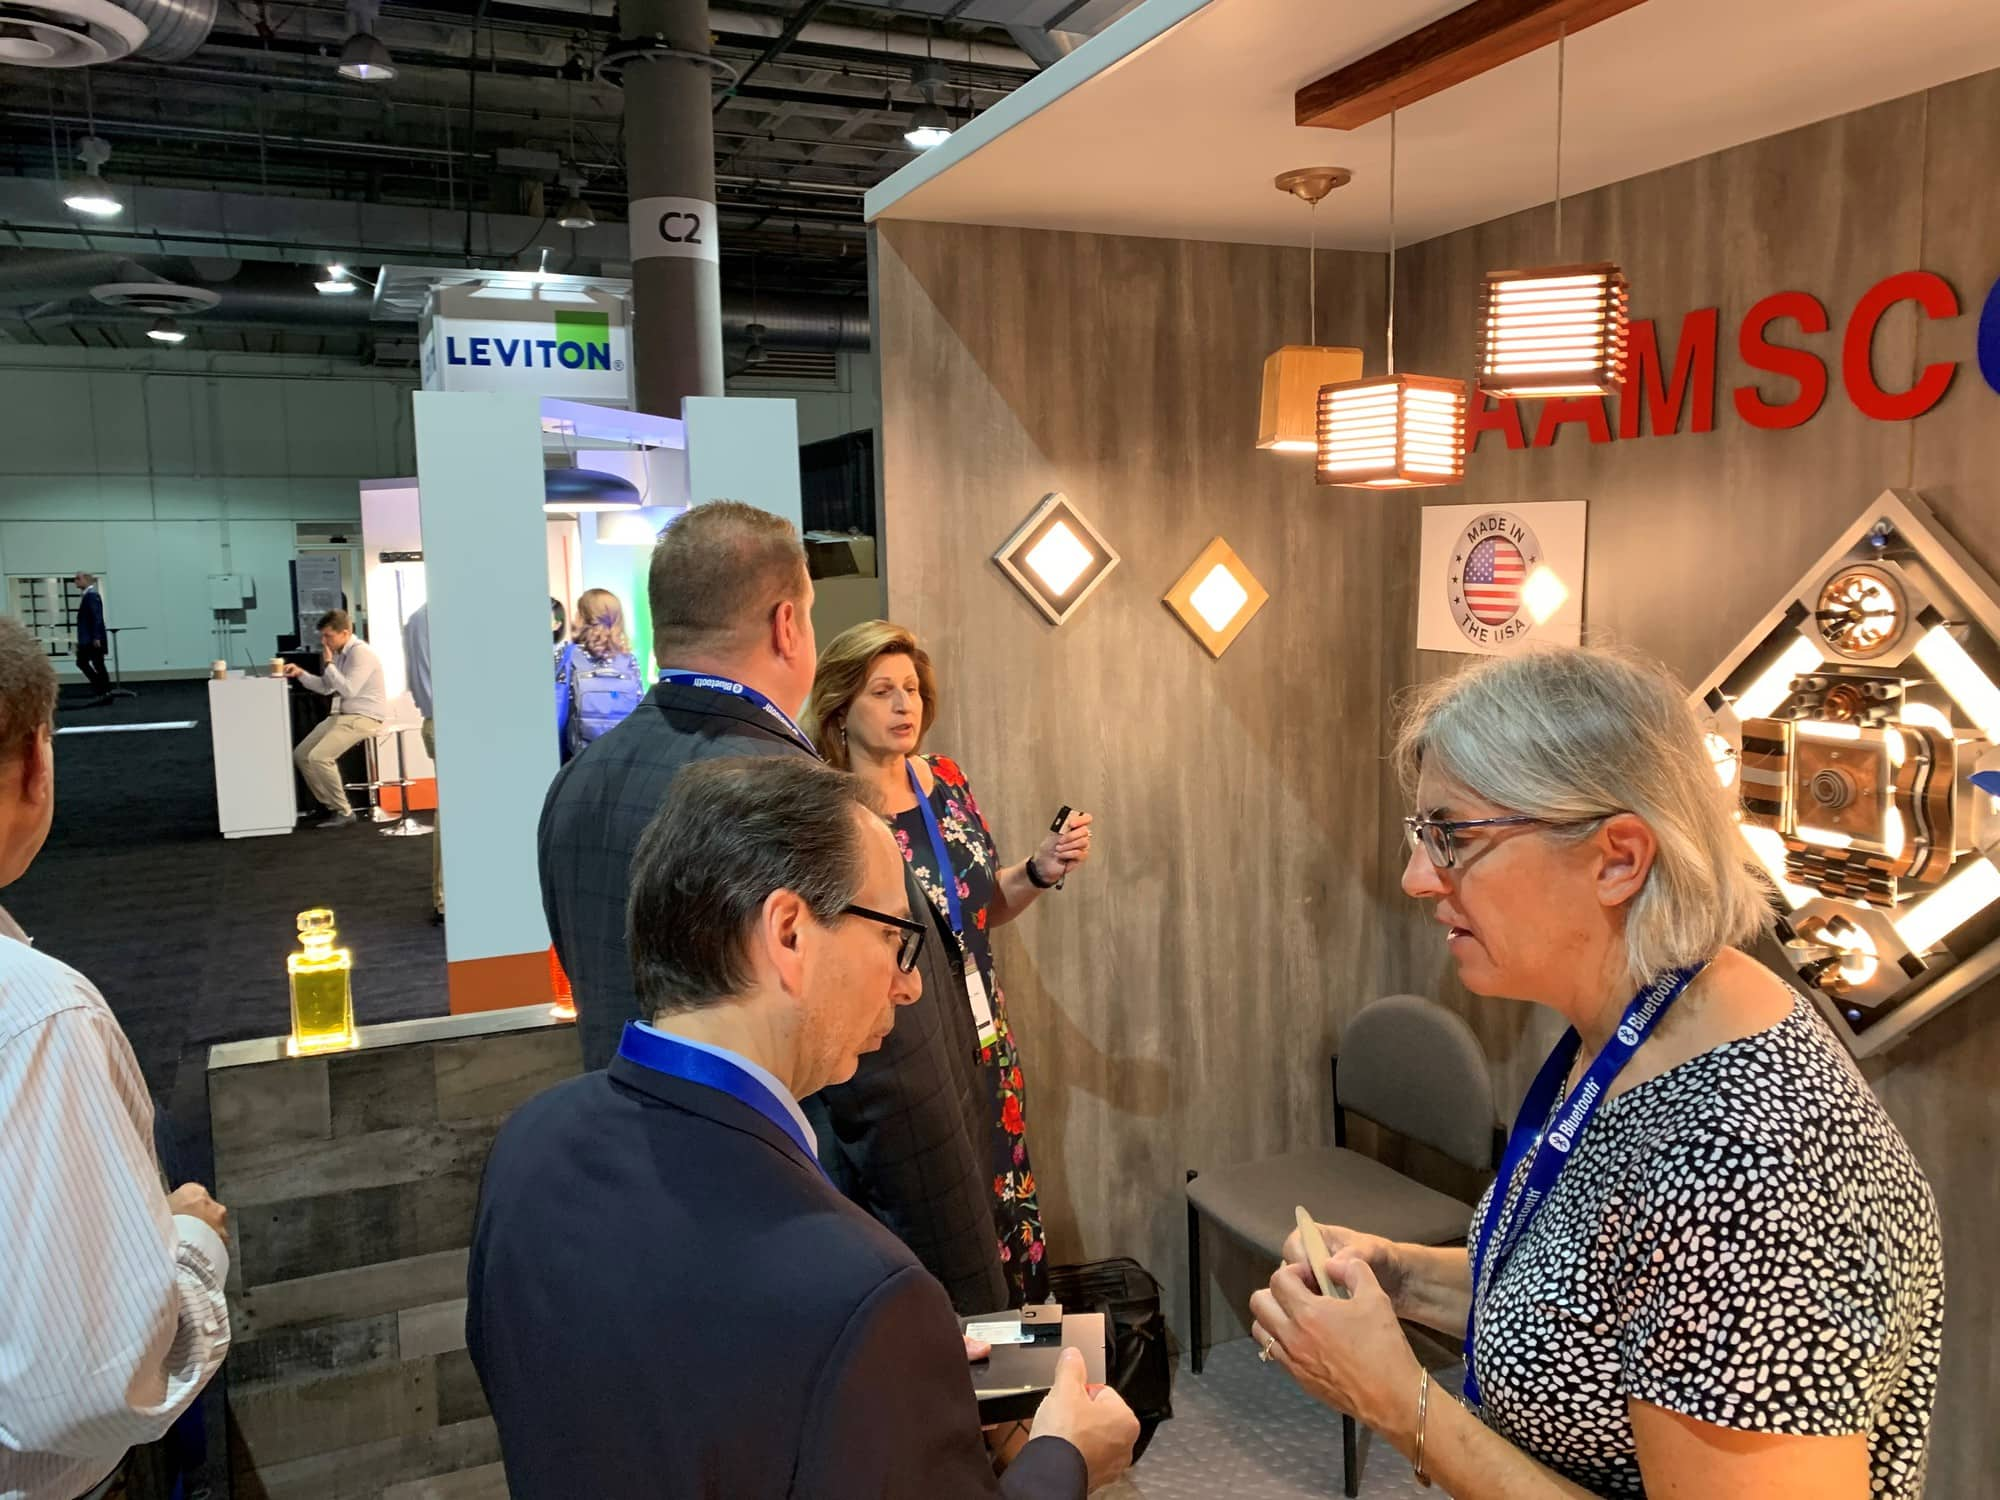 OLEDWorks' Giana talking to Aamsco visitors at LSW 2019 | OLEDWorks